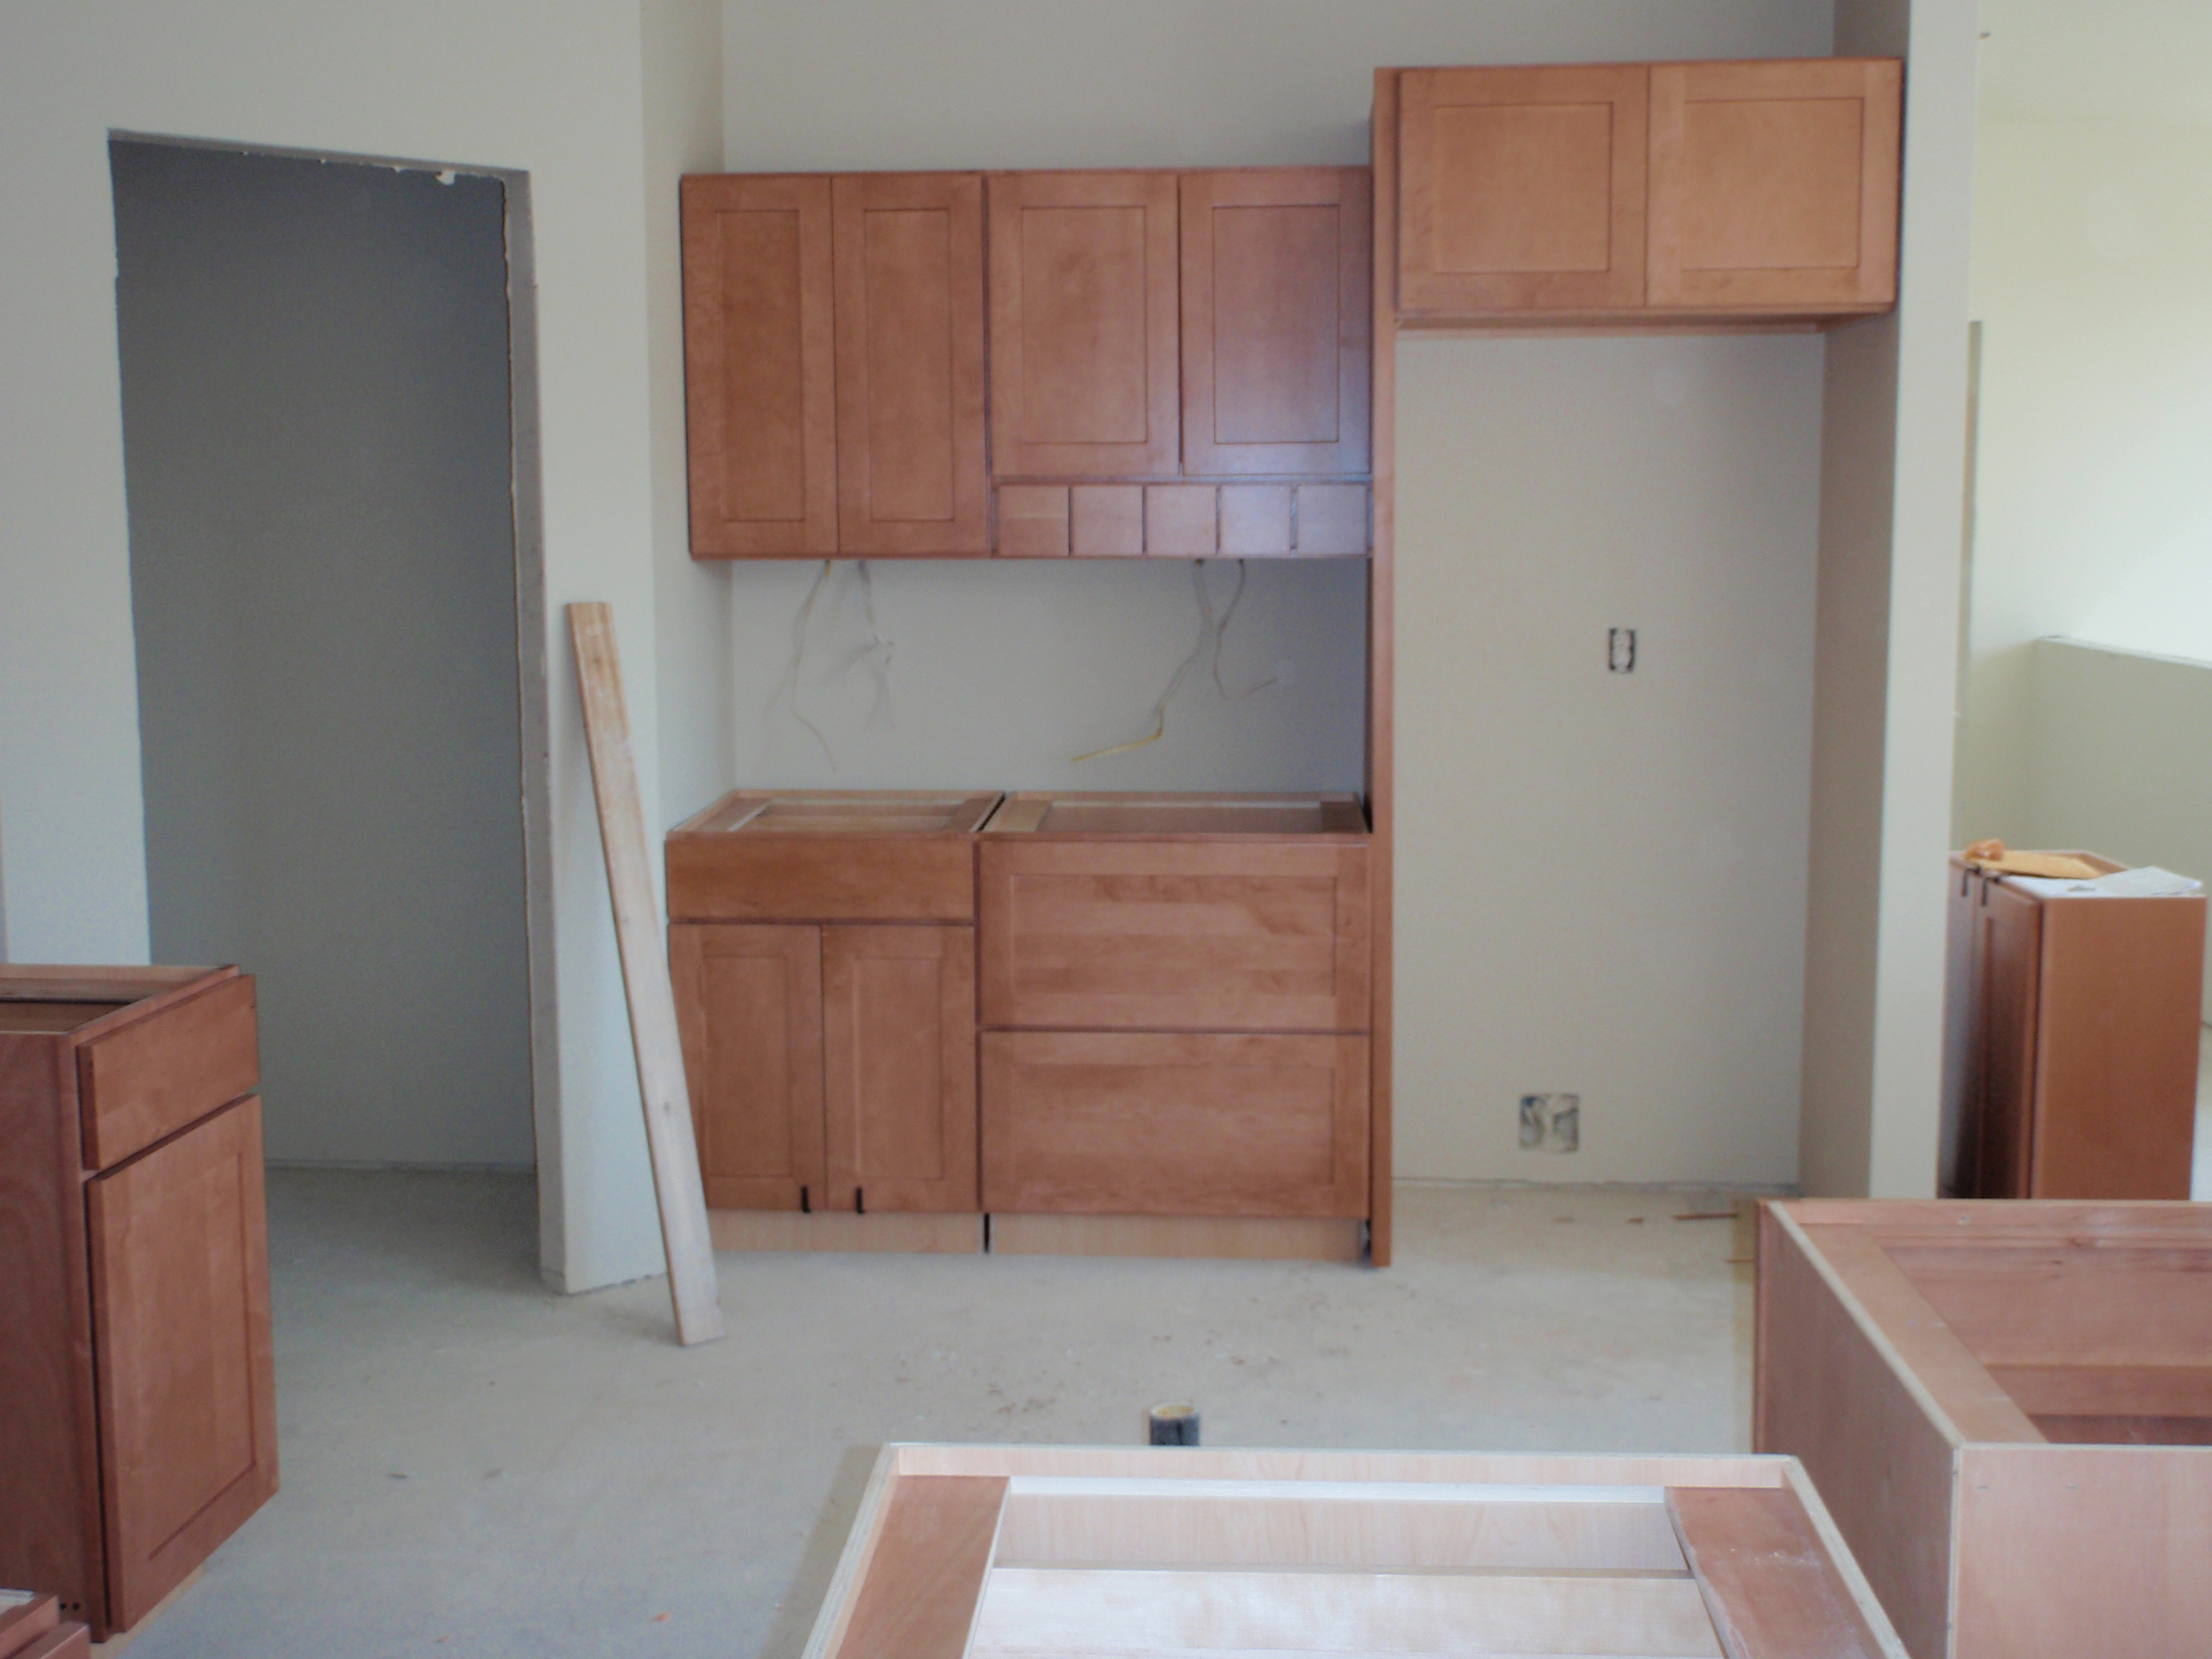 Cabinets Going Up After Turmoil | Living a Rewarding Life ...